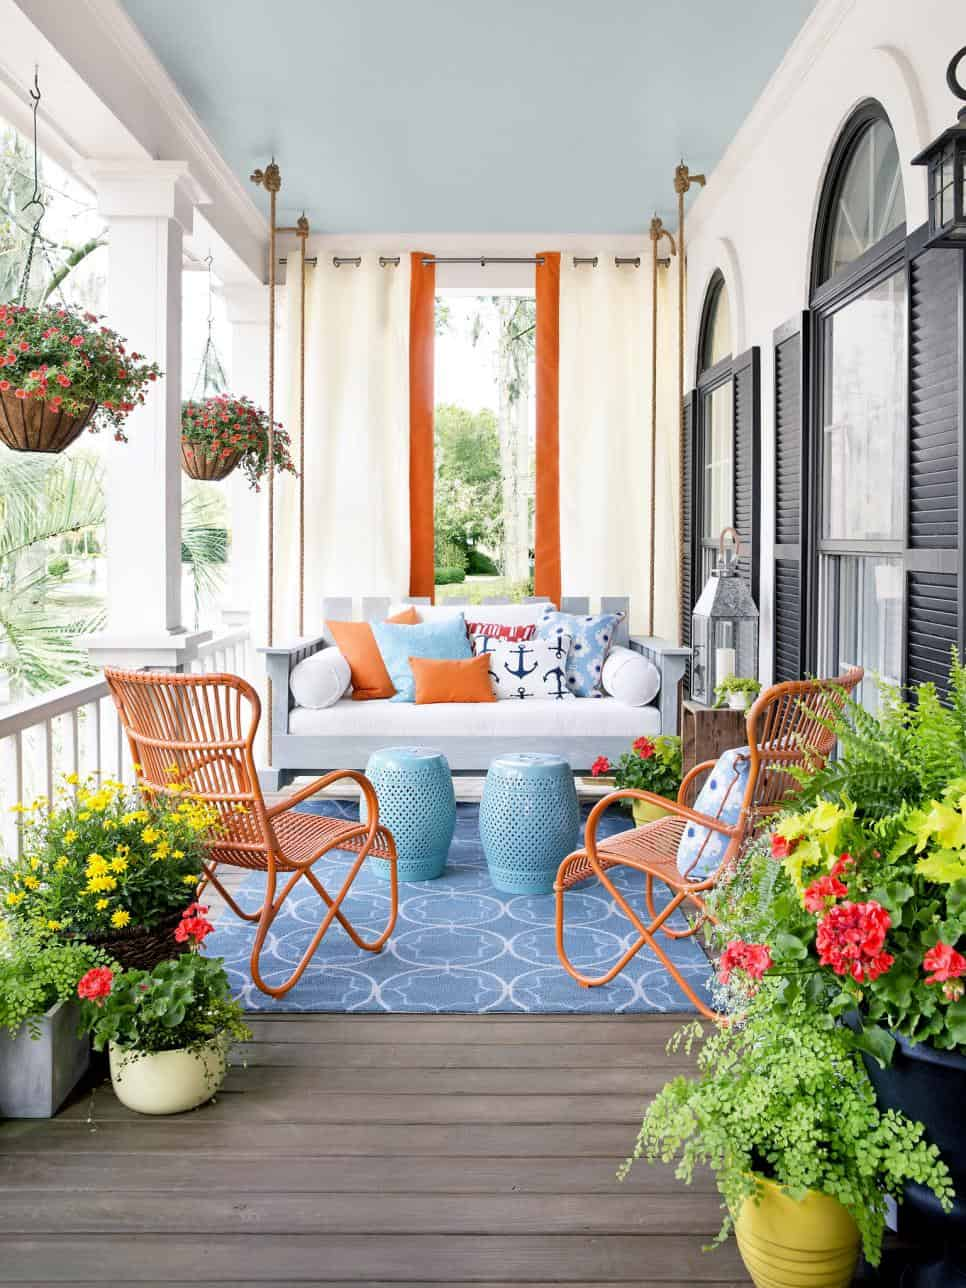 Boho inspired porch swing decor